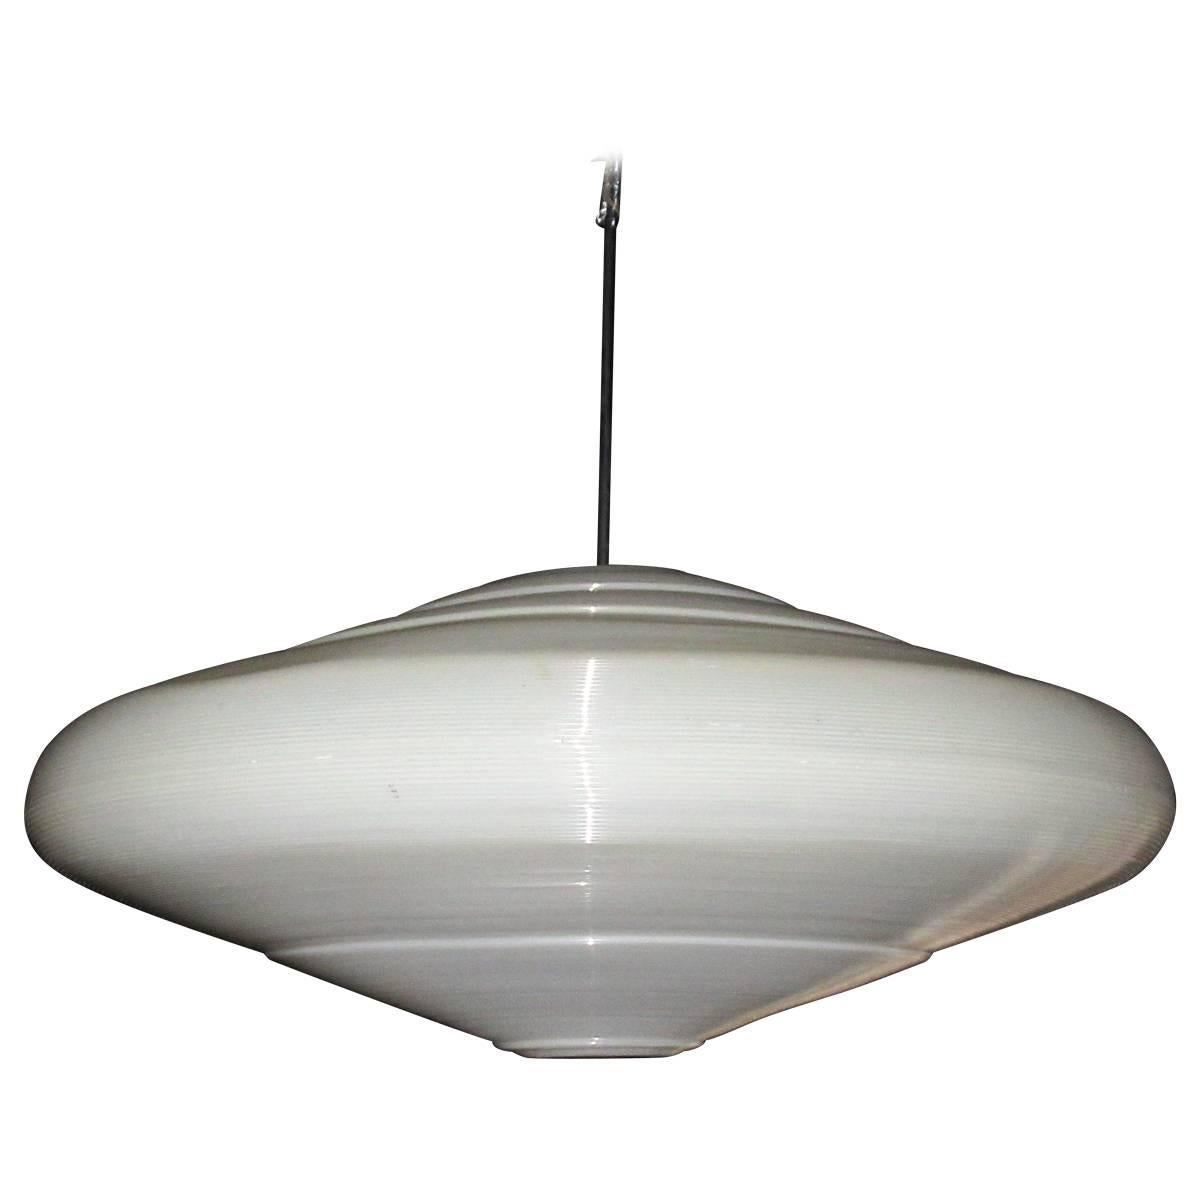 Ribbed saucer pendant chandelier by heifetz rotoflex for sale at 1stdibs